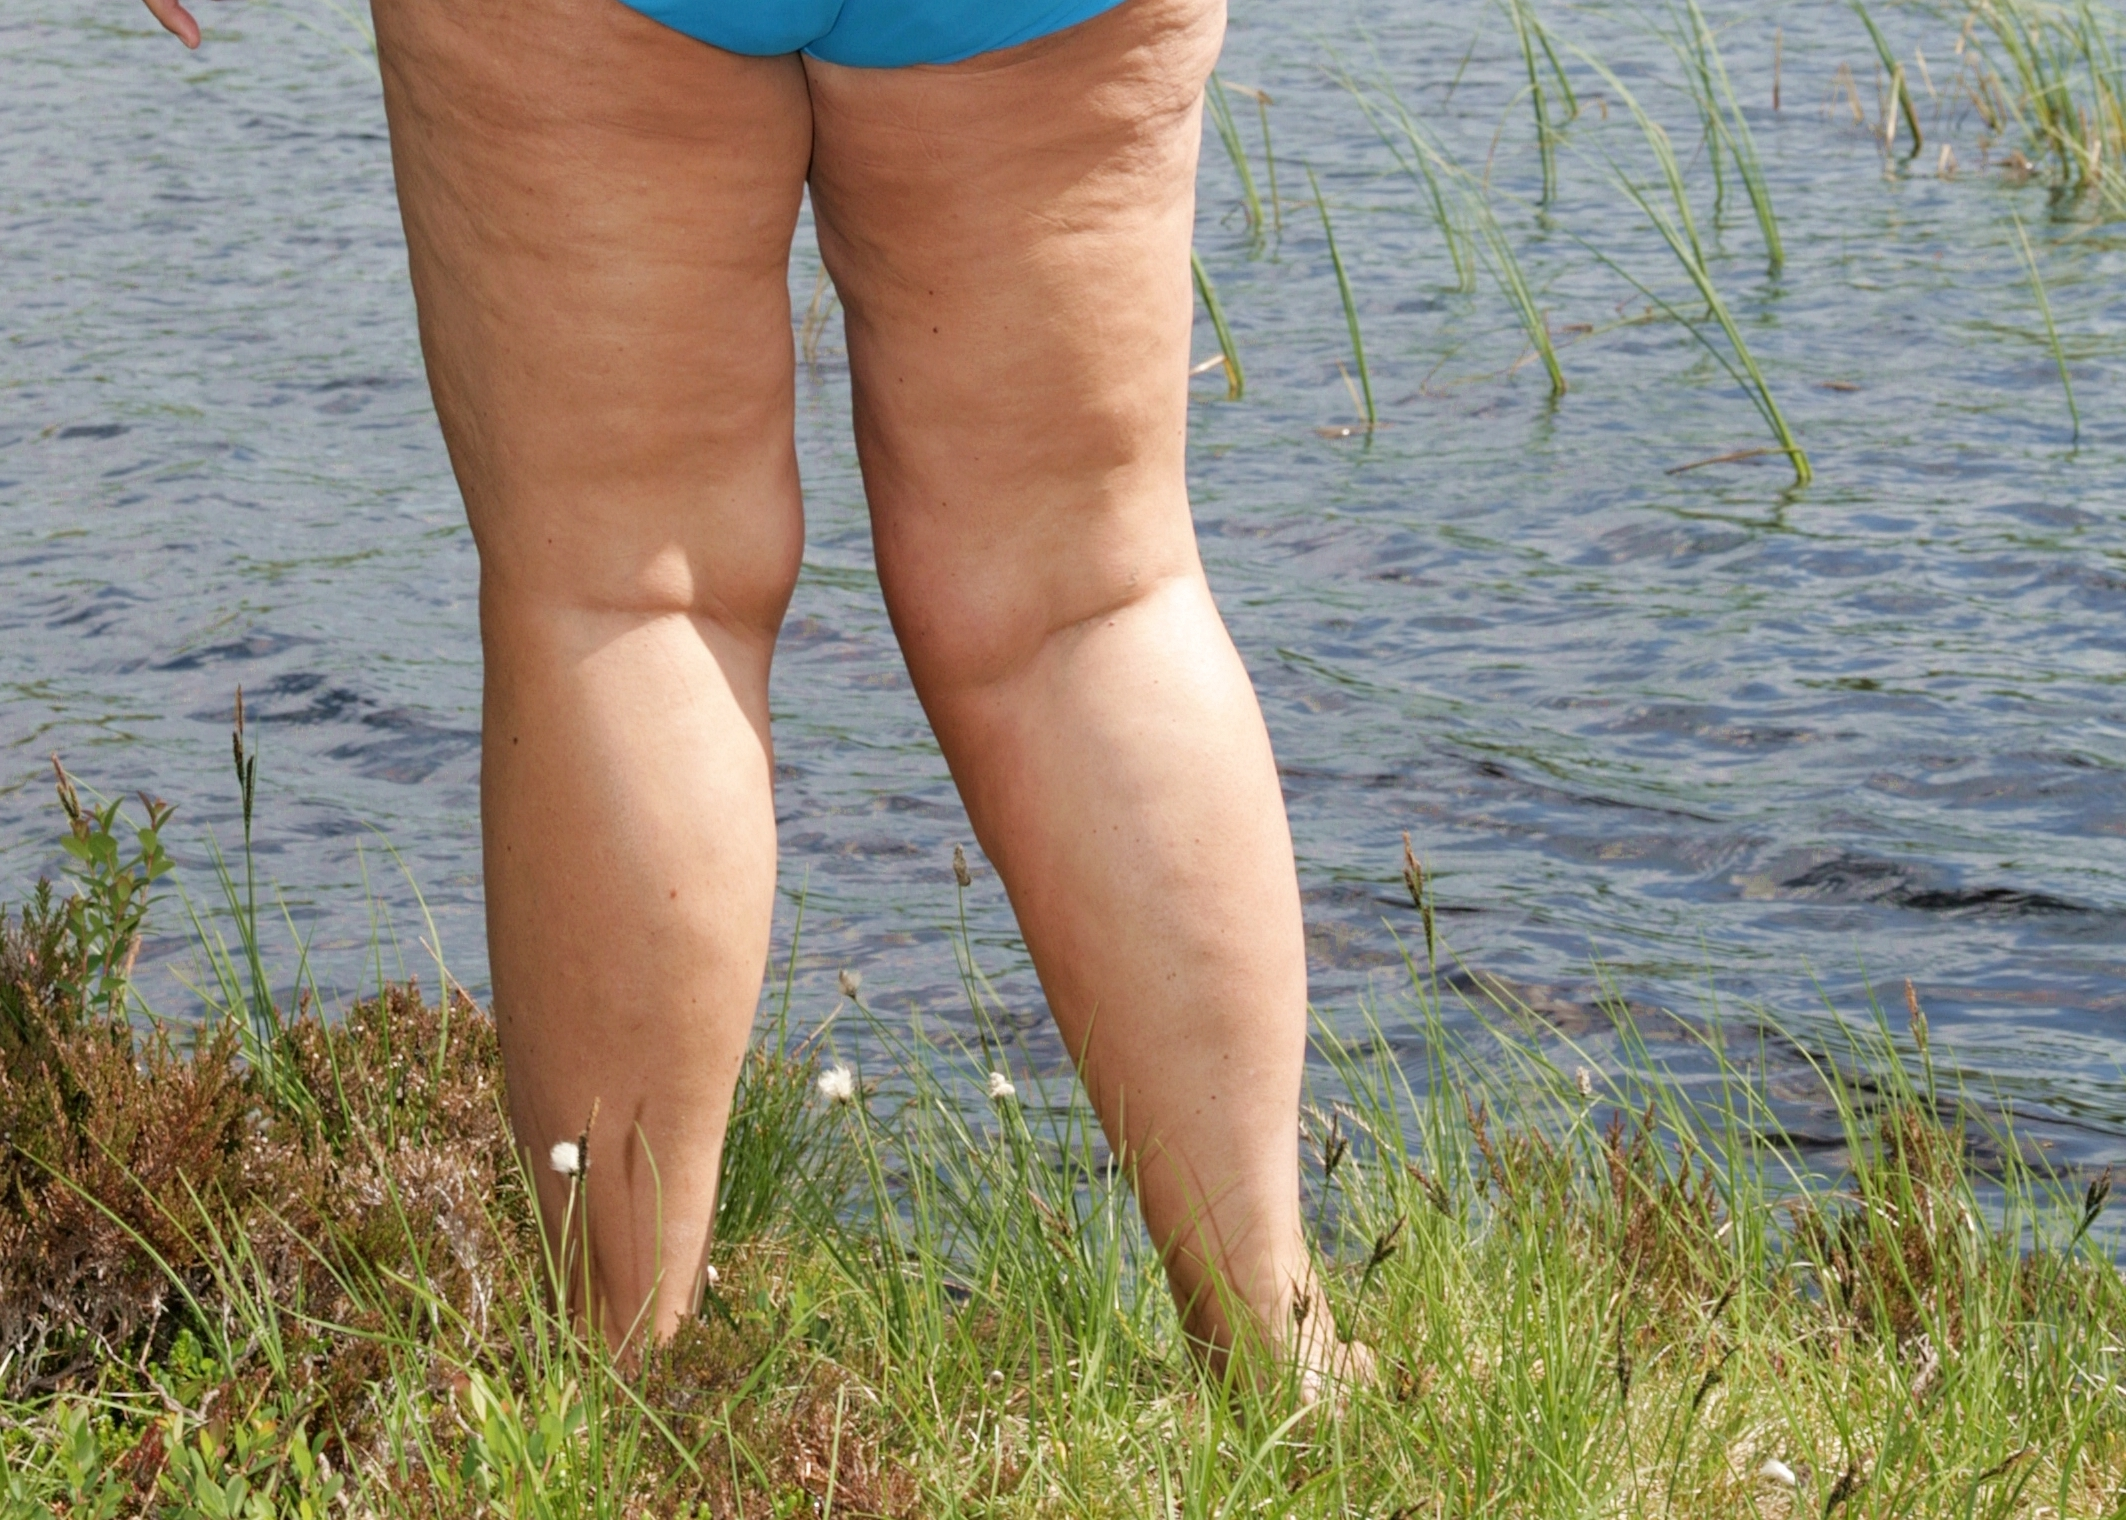 Hefty Thighs Not Healthy: How to Lose Thigh Fat